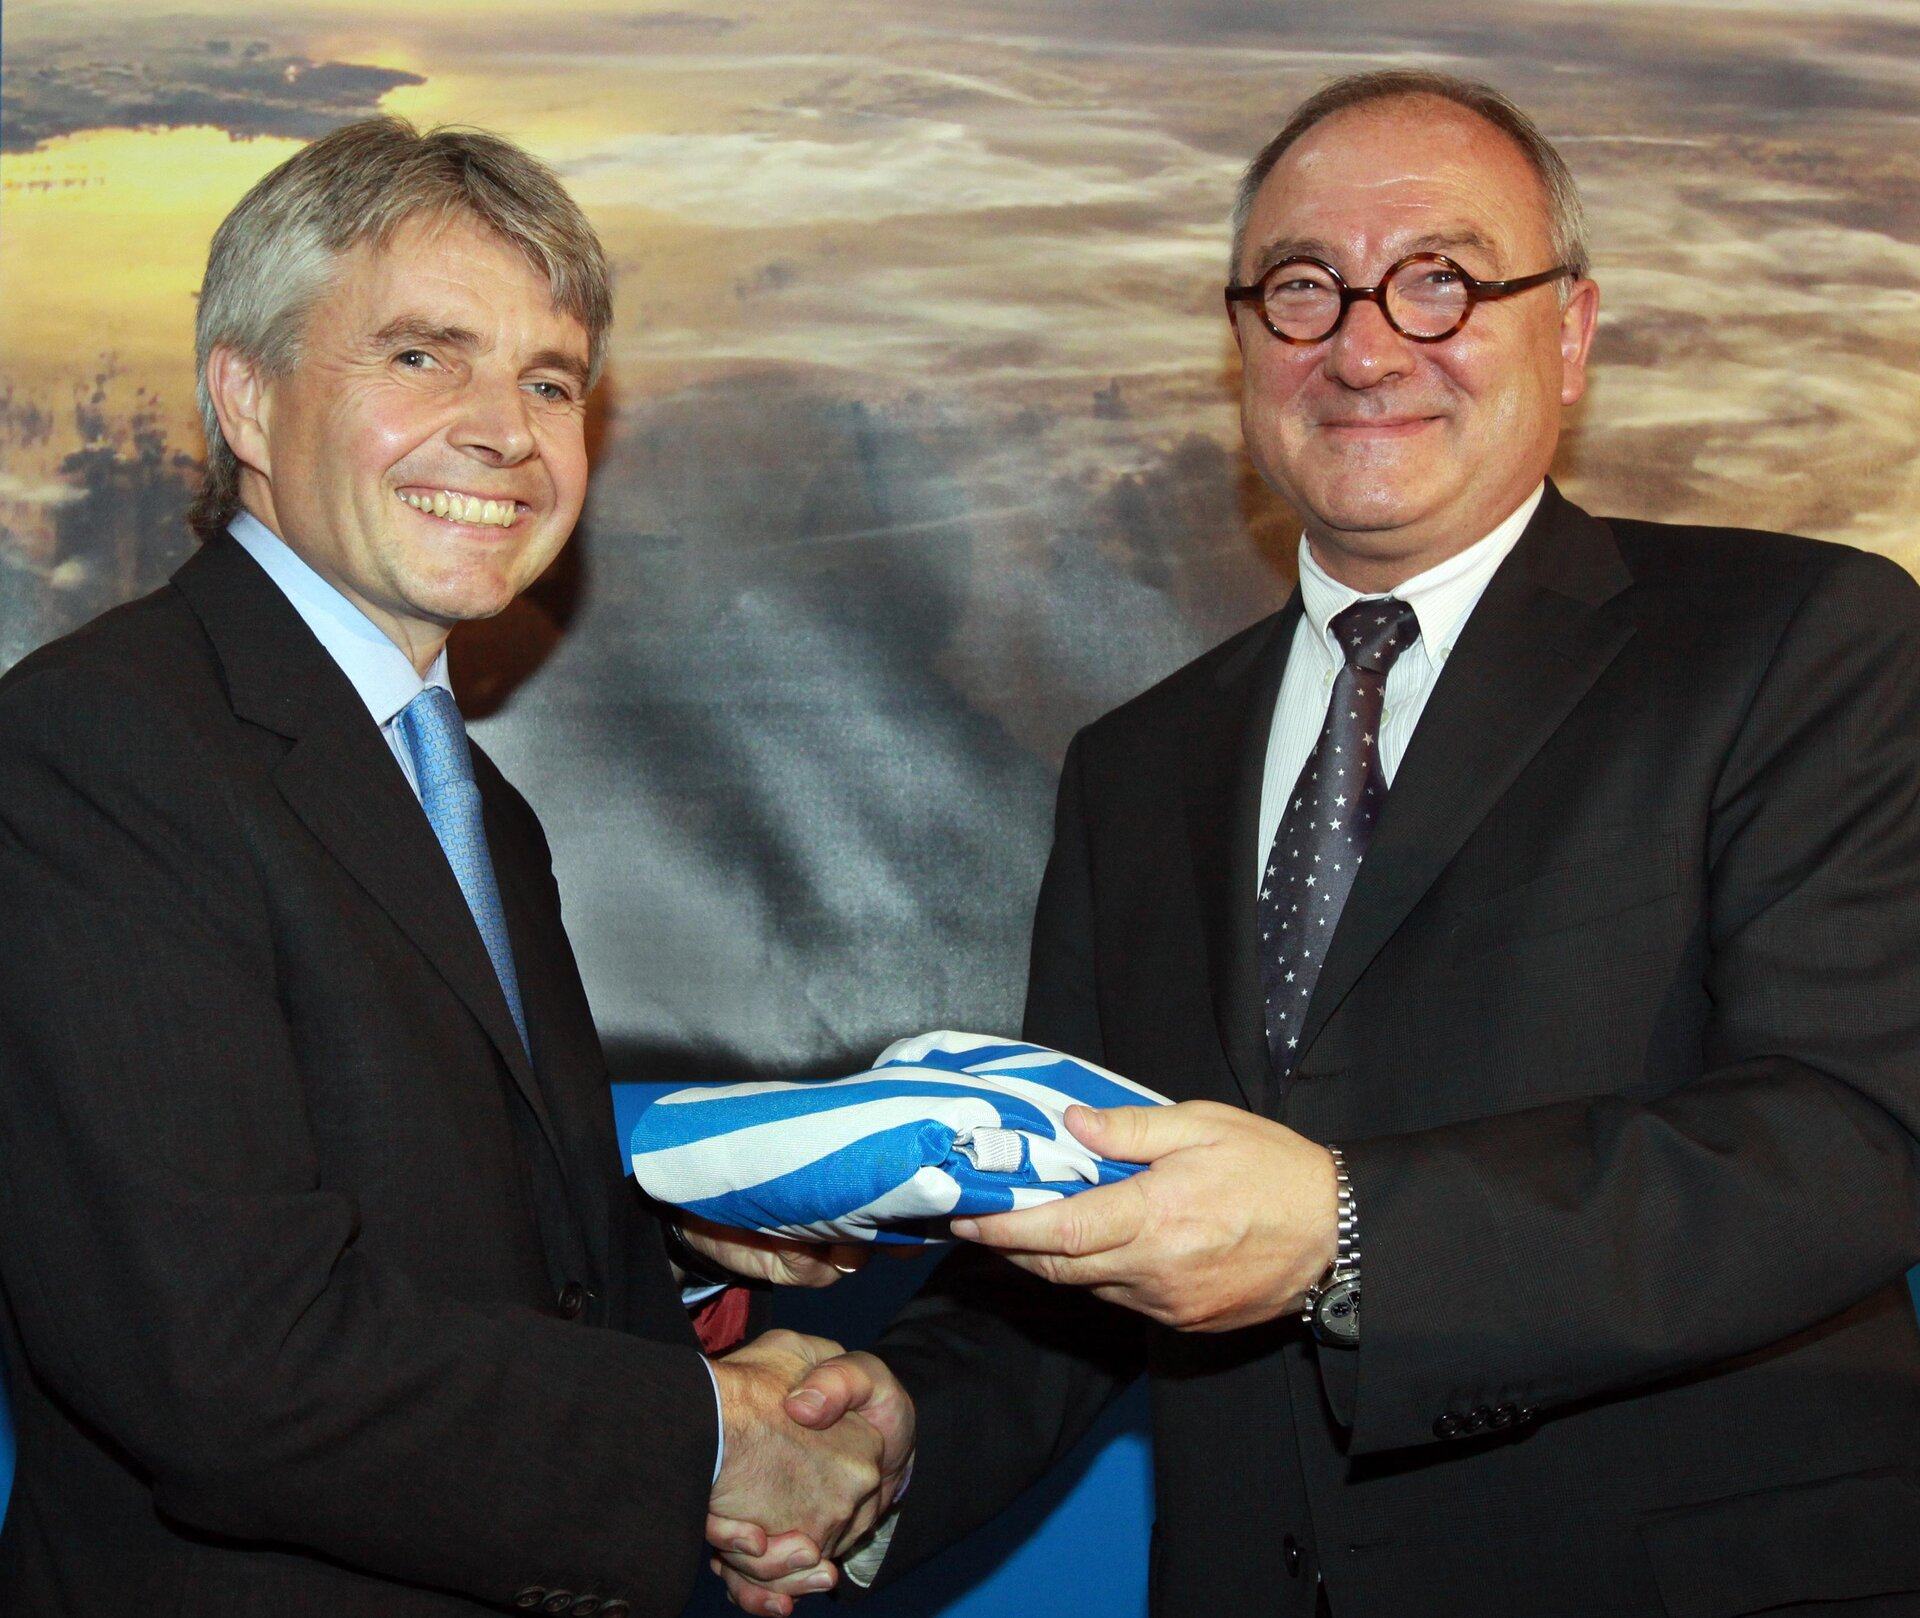 ESA Director General Jean-Jacques Dordain presents ESA flag to Lord Drayson, UK Minister for Science and Innovation